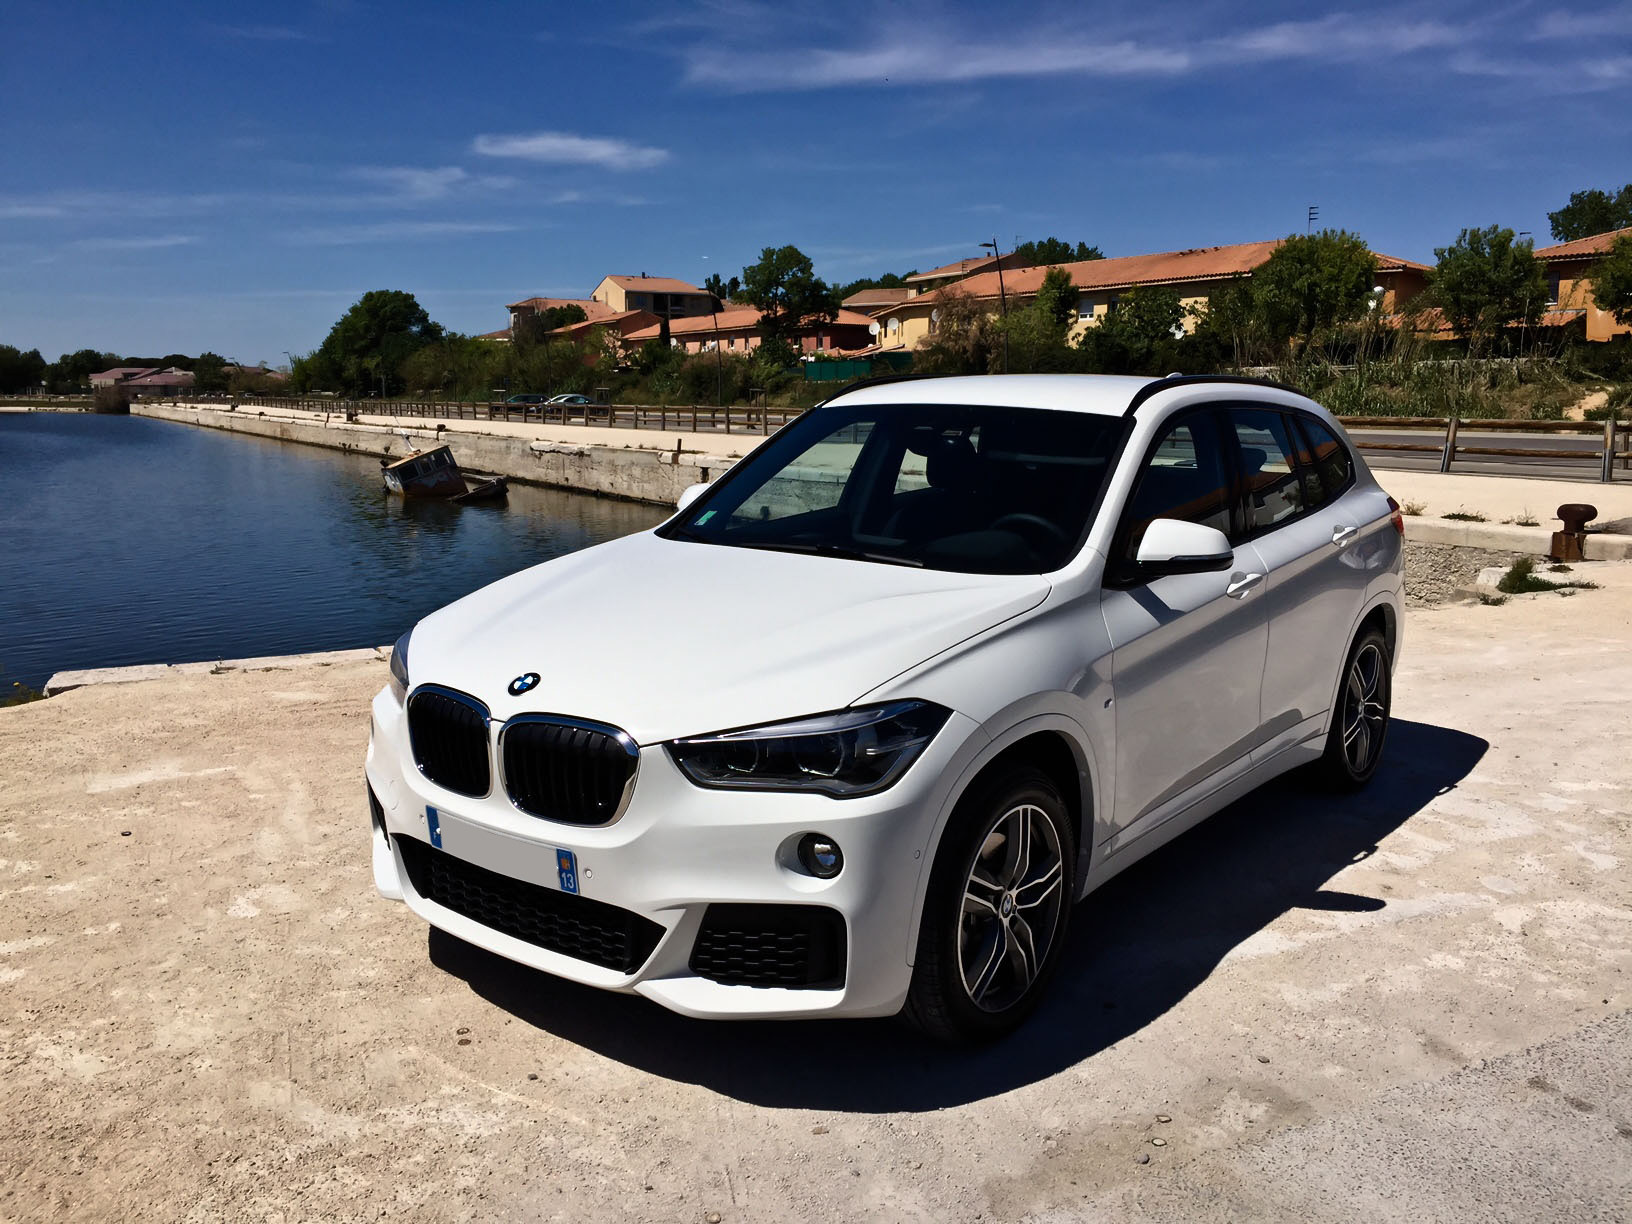 bmw x1 f48 2015 topic officiel page 198 x1 bmw forum marques. Black Bedroom Furniture Sets. Home Design Ideas